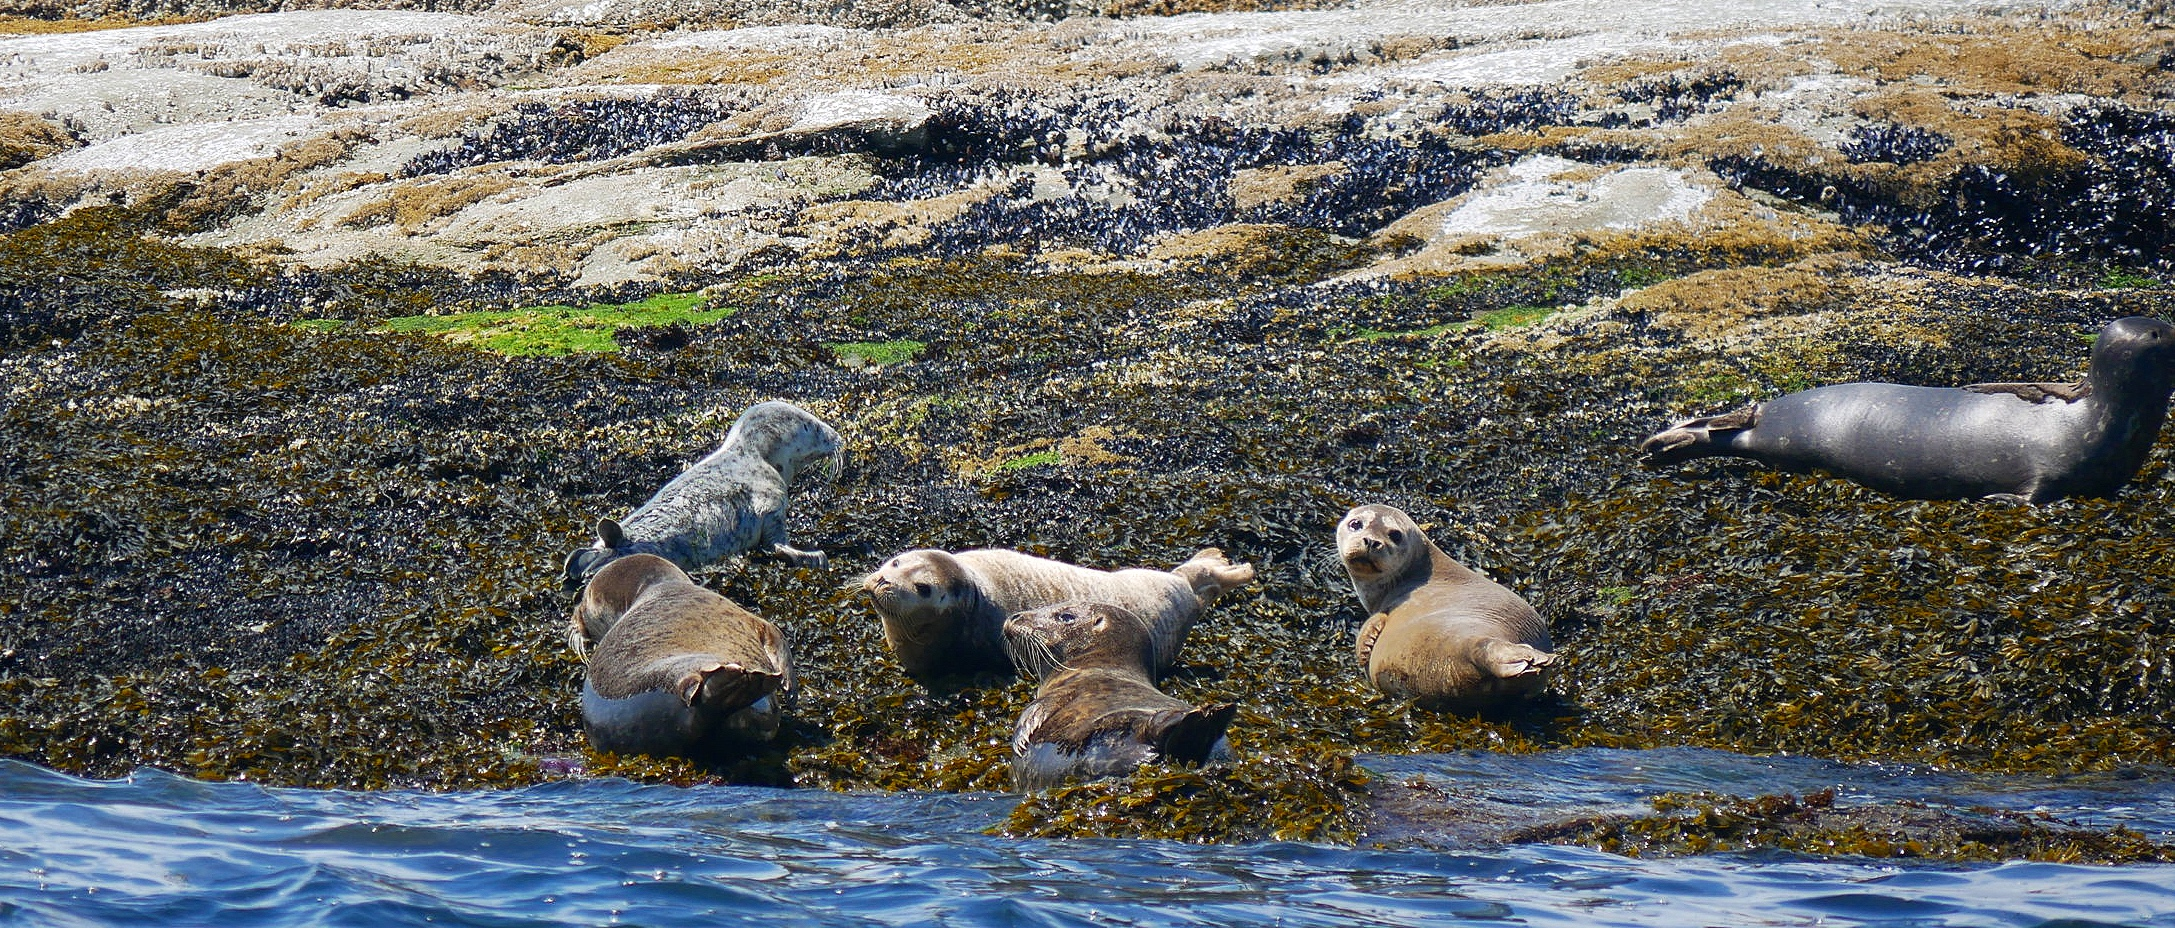 Harbour Seals are pretty darn cute! Photo by Rebeka Pirker (10.30)